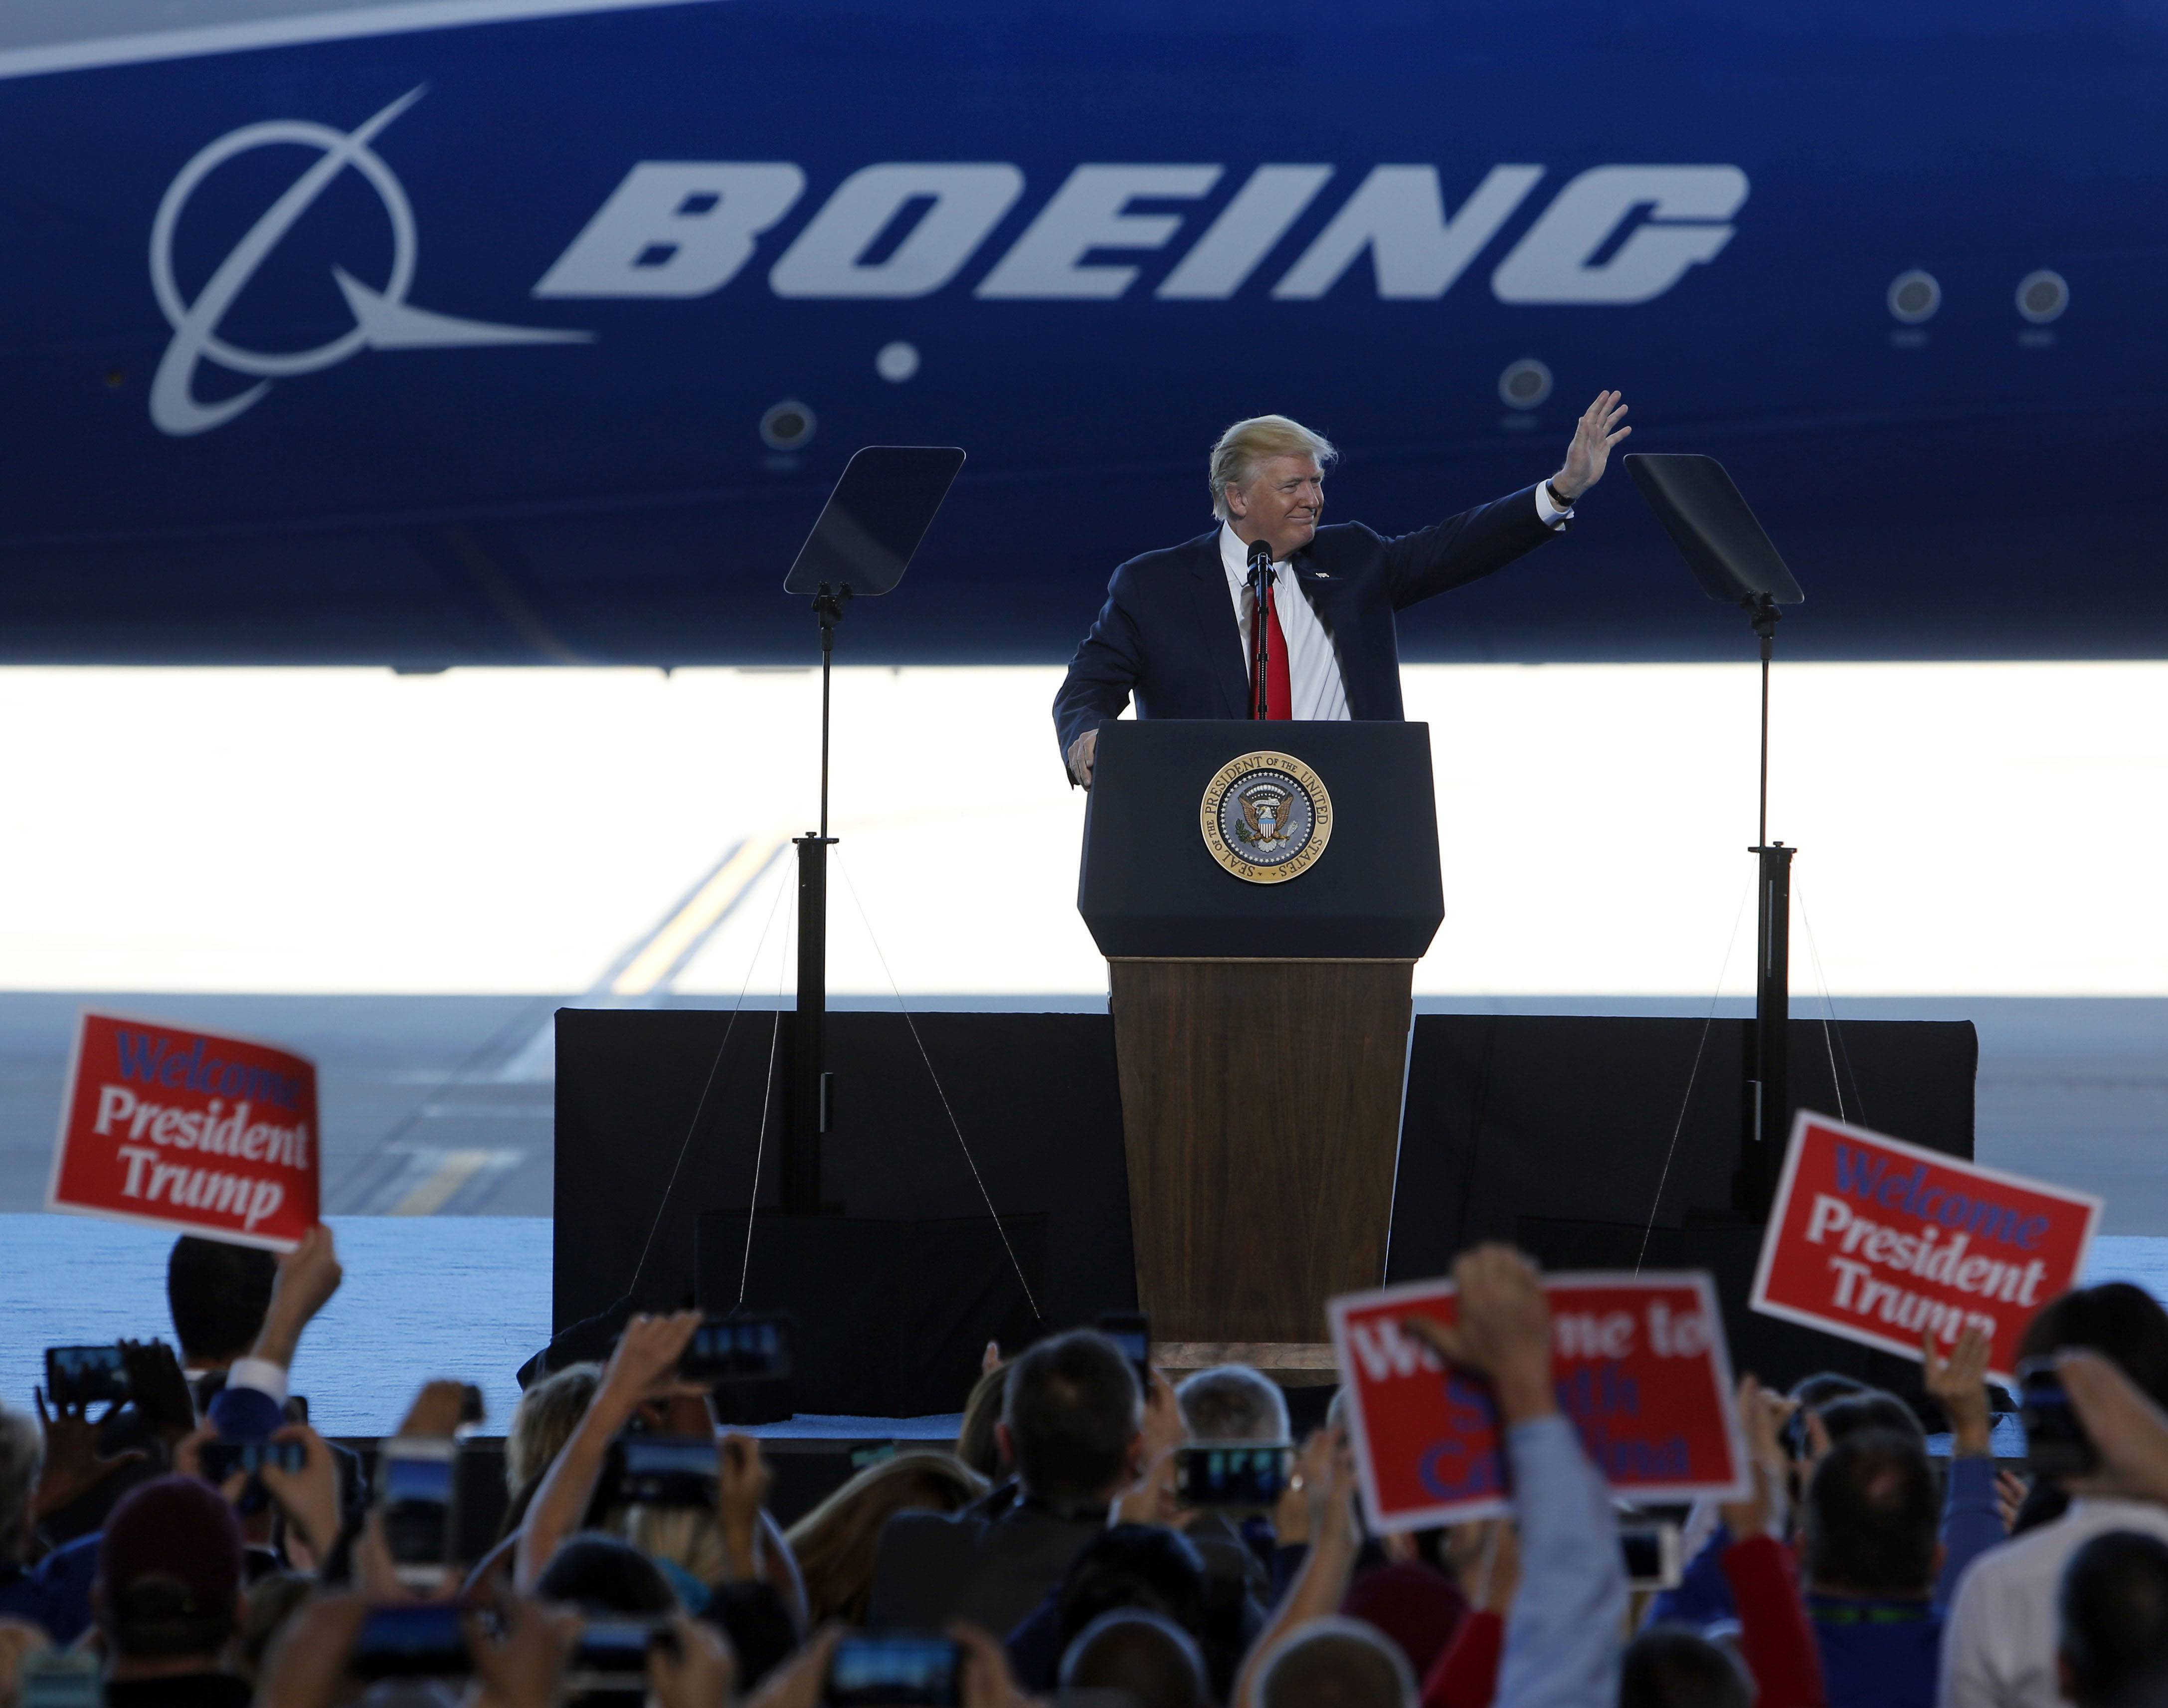 During an address to Boeing workers last week in South Carolina, President Donald Trump hinted that a large order was ahead.